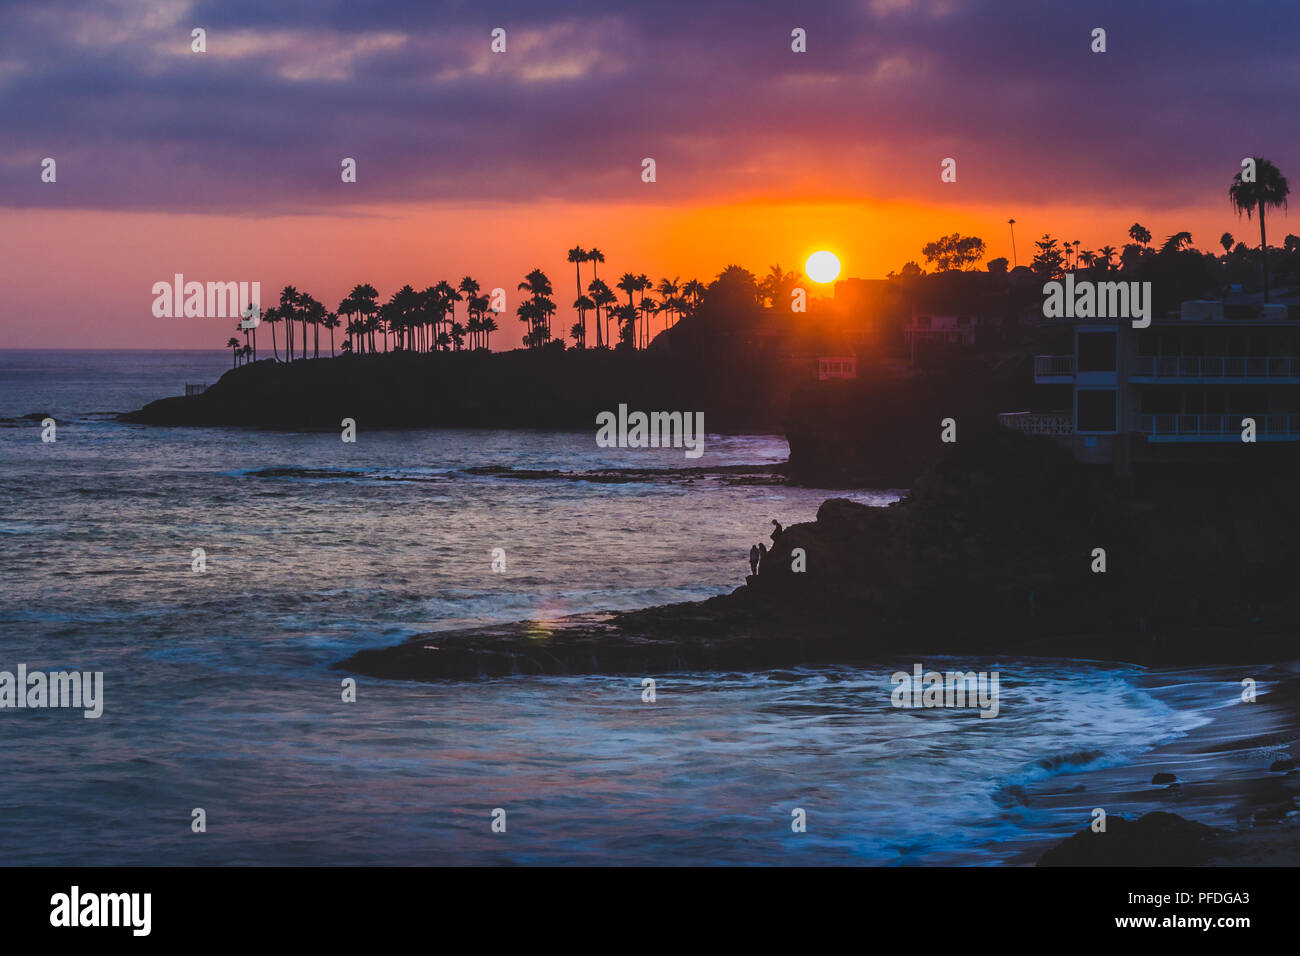 Beautiful coastal view of a colorful sky at sunset with waves crashing into rock formations and silhouette of palm trees, Divers Cove, Laguna Beach, C Stock Photo